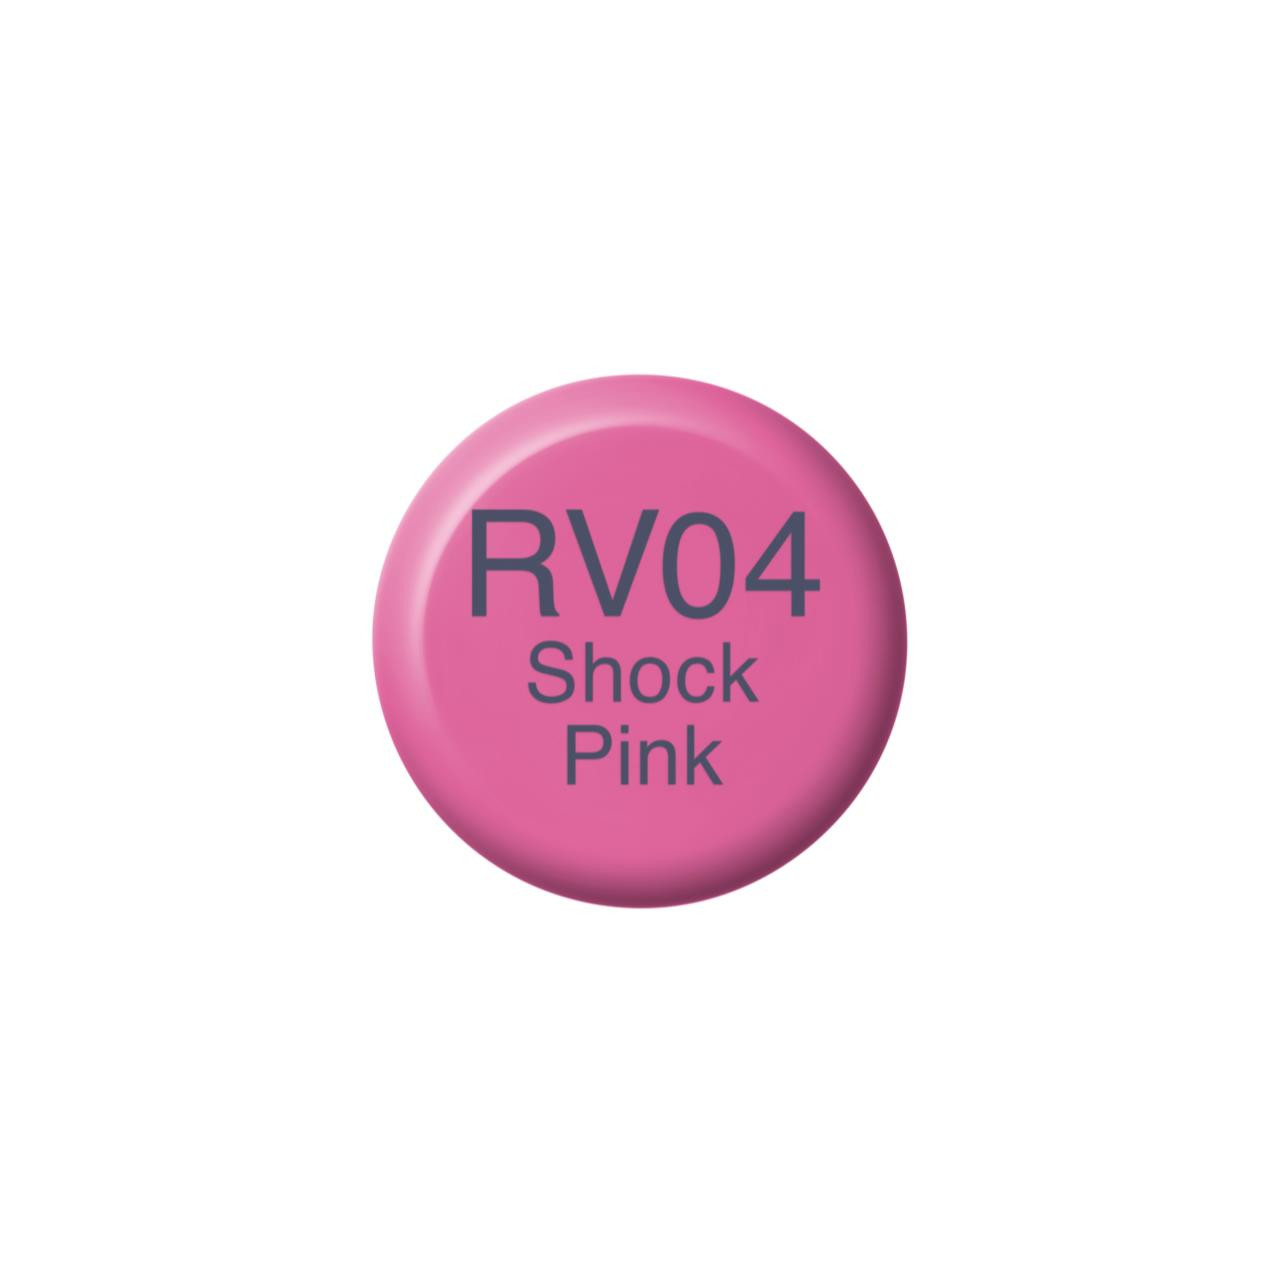 RV04 Shock Pink, Copic Ink - 4511338057704